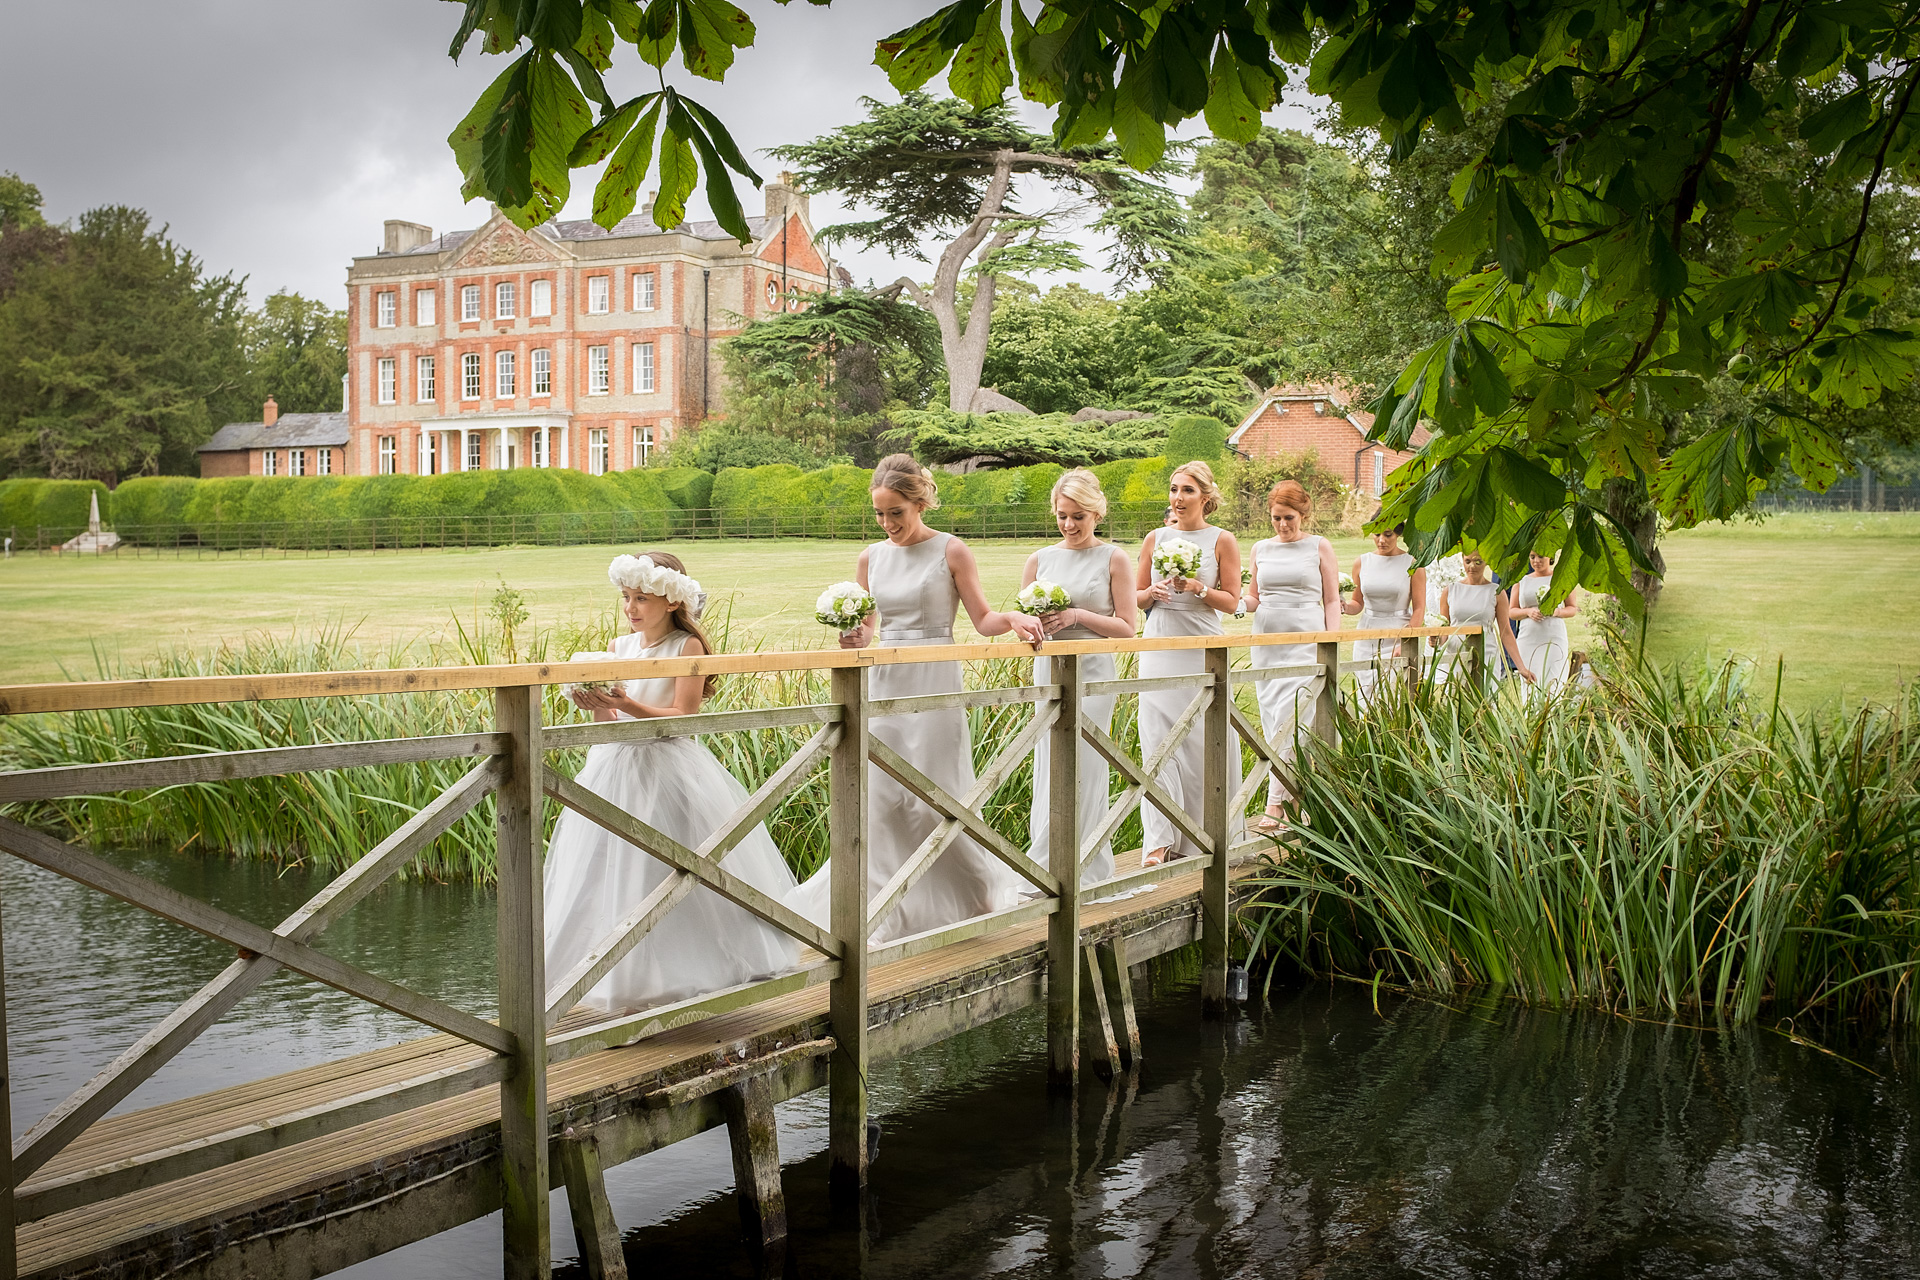 Bridesmaids photograph by Essex wedding photographer Eyeshine Photography